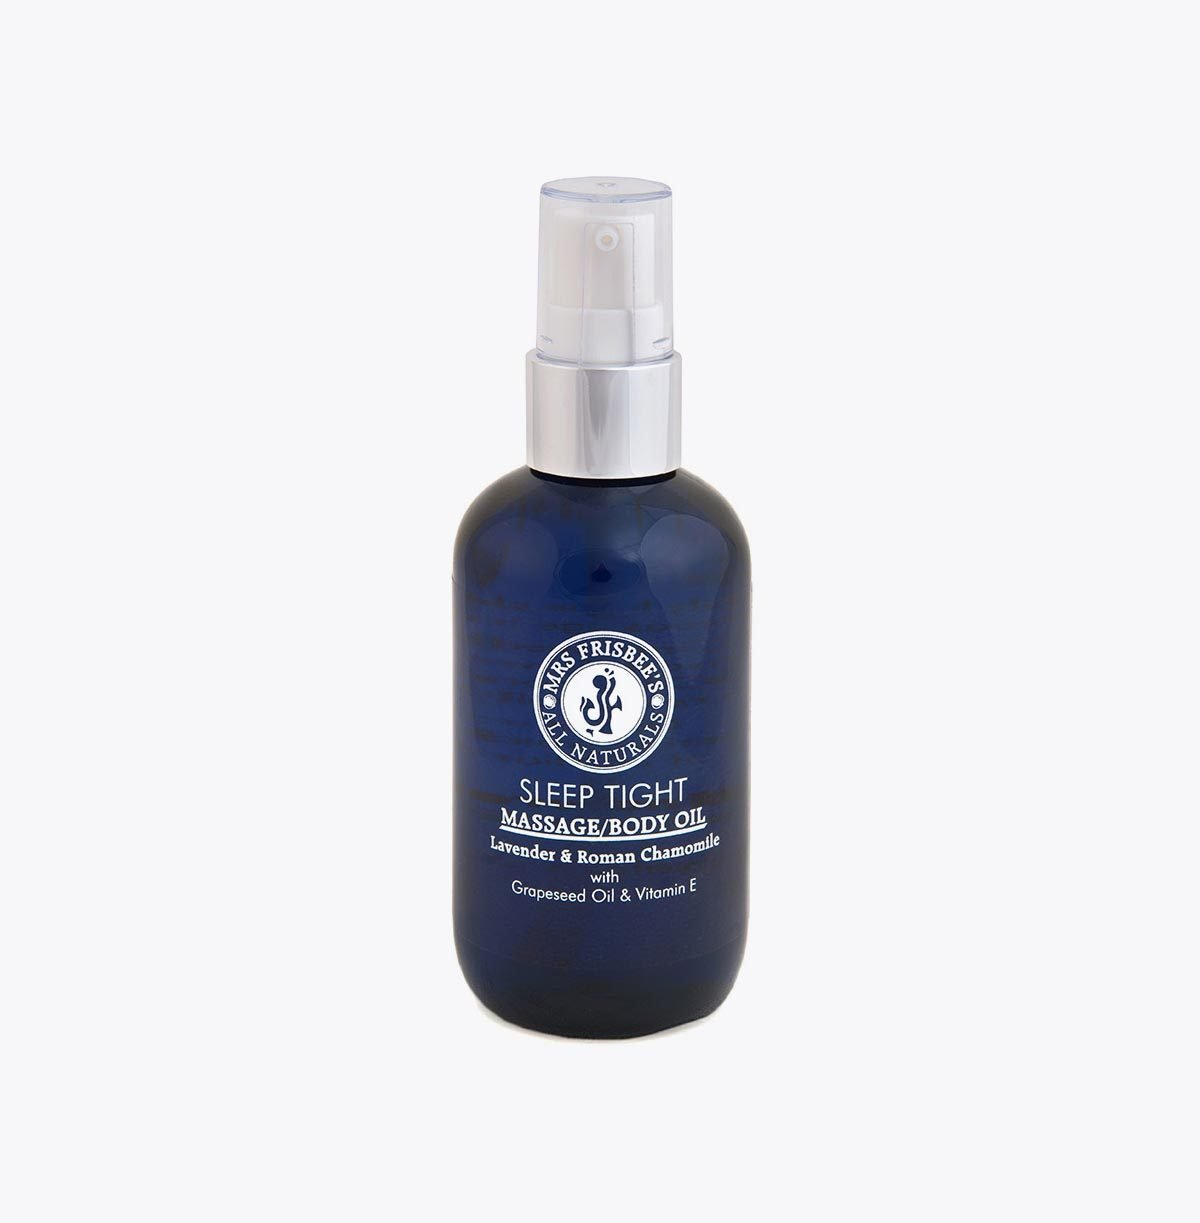 Sleep Tight Massage Oil with Lavender and Roman Chamomile essential oils, grapeseed oil and vitamin E.